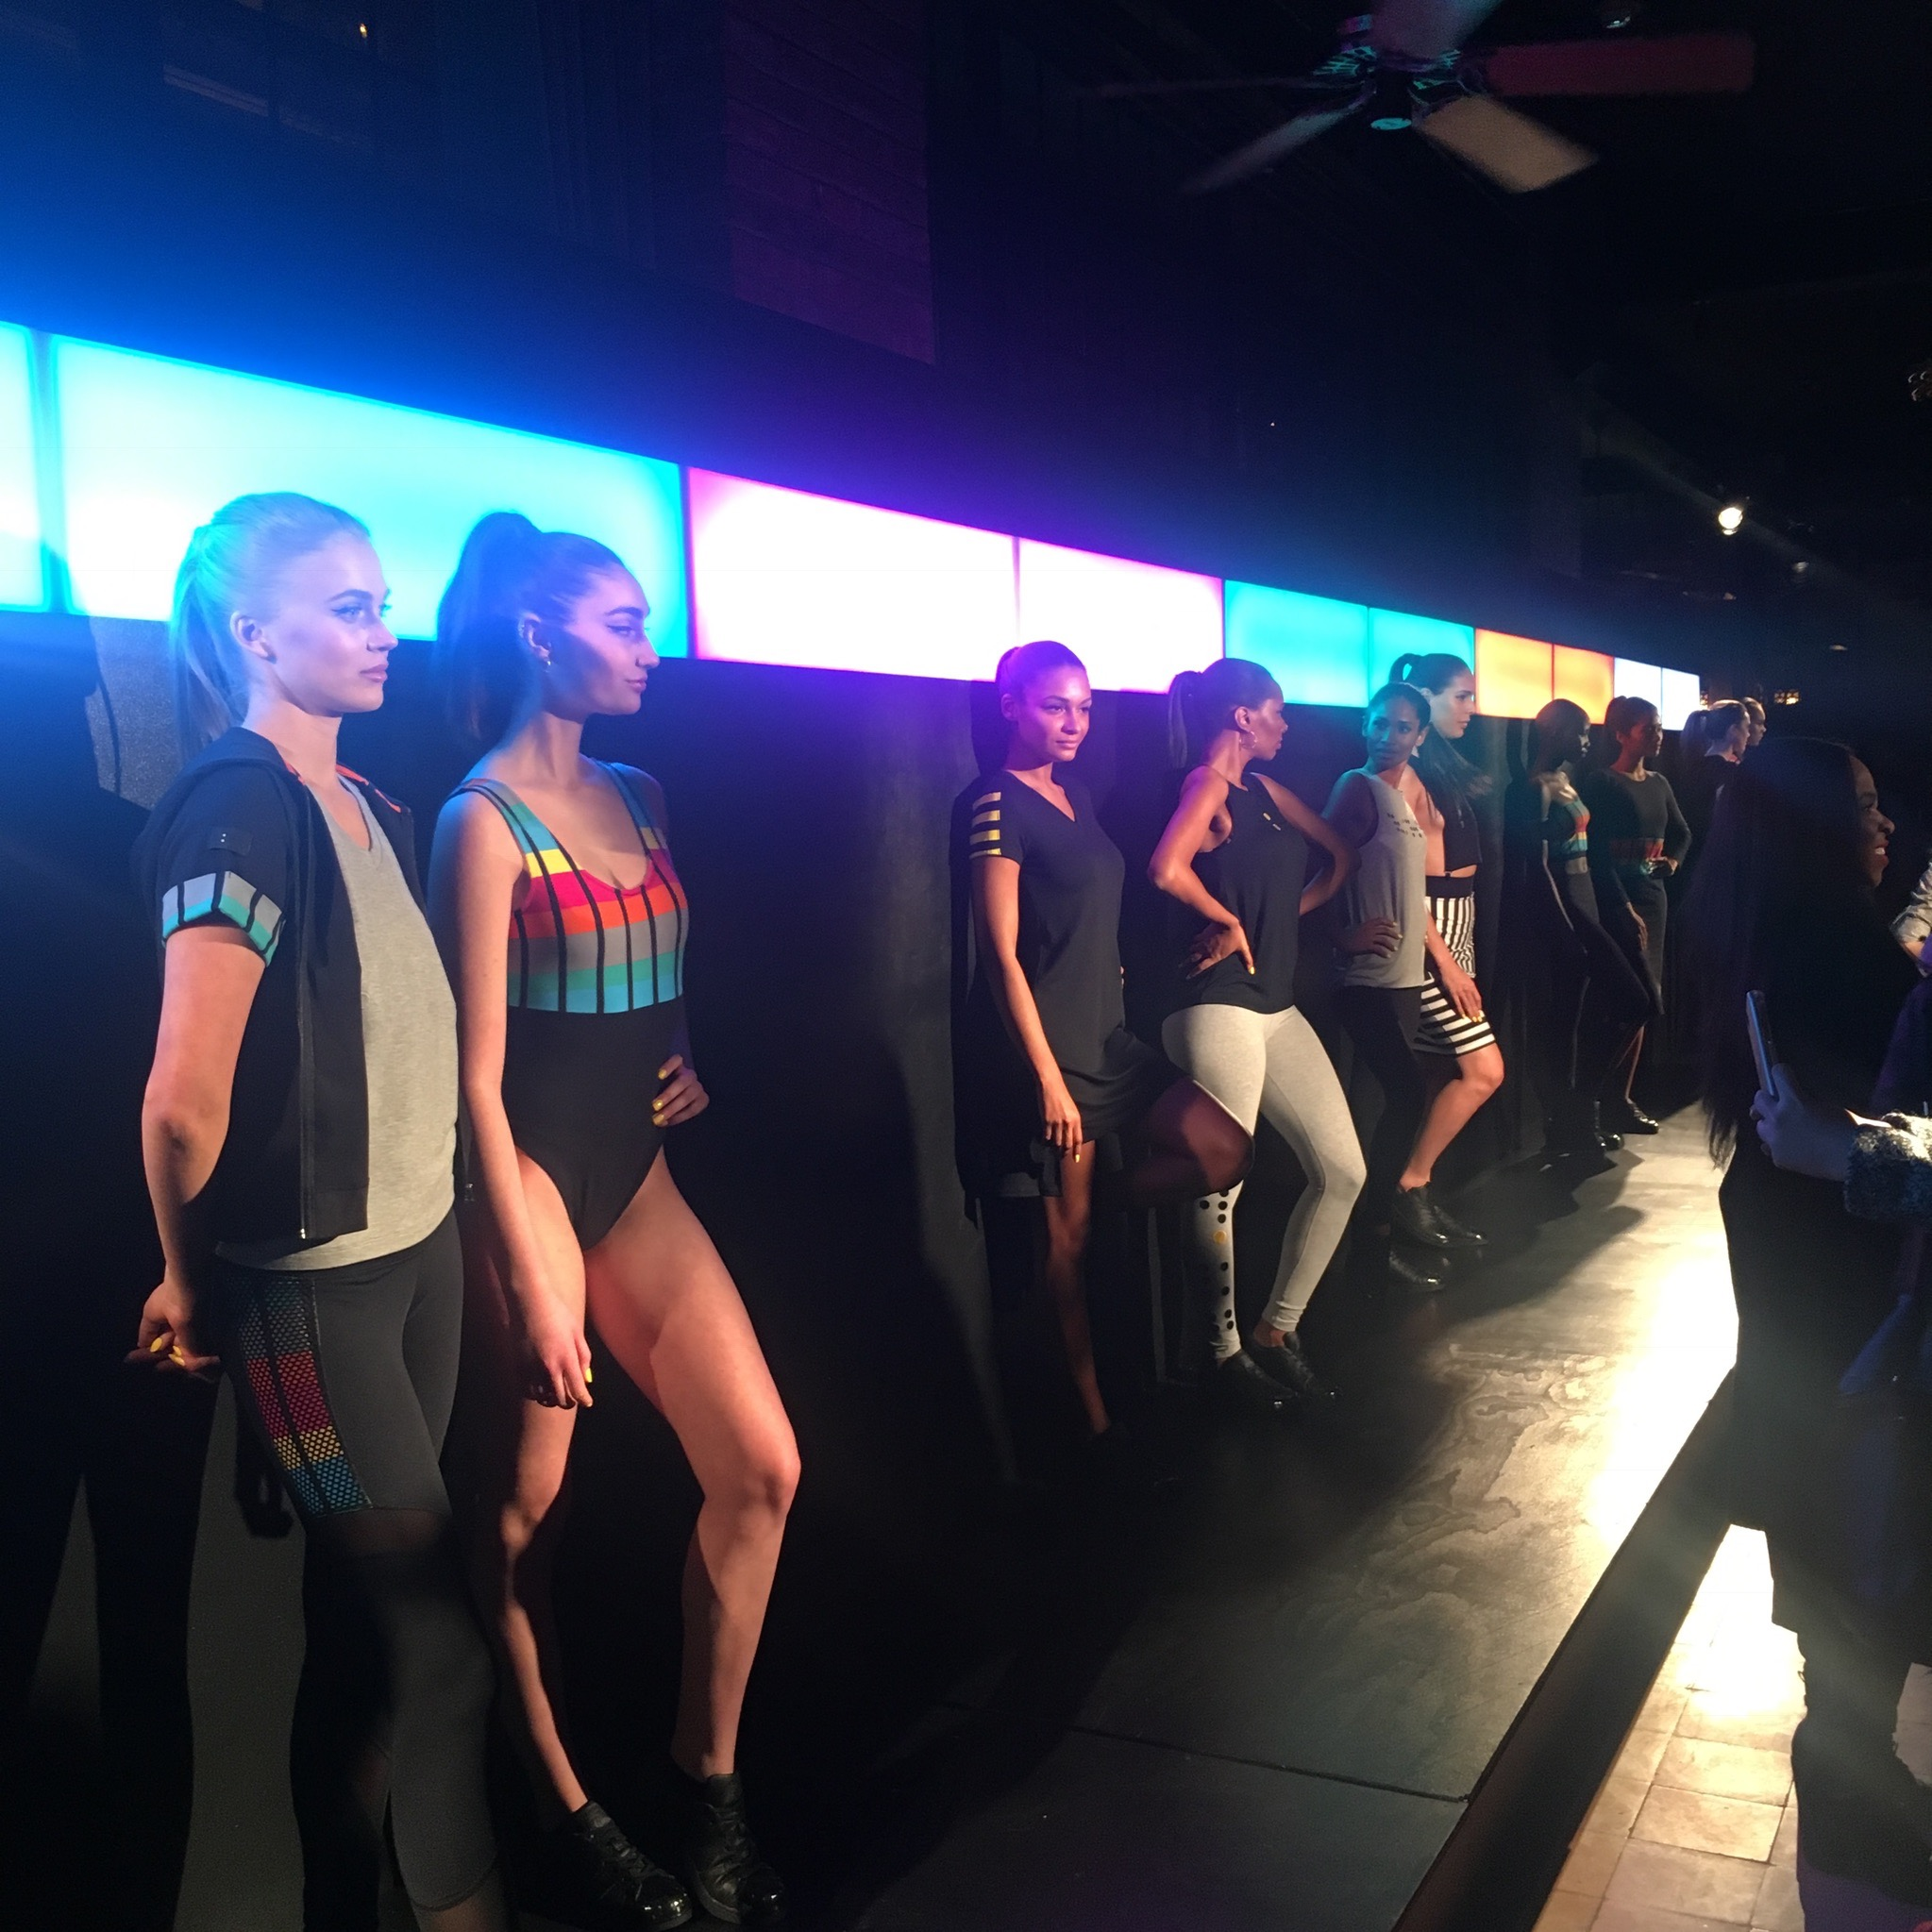 Preview Events - six 02 - main stage - fashion show - models on stage.jpg